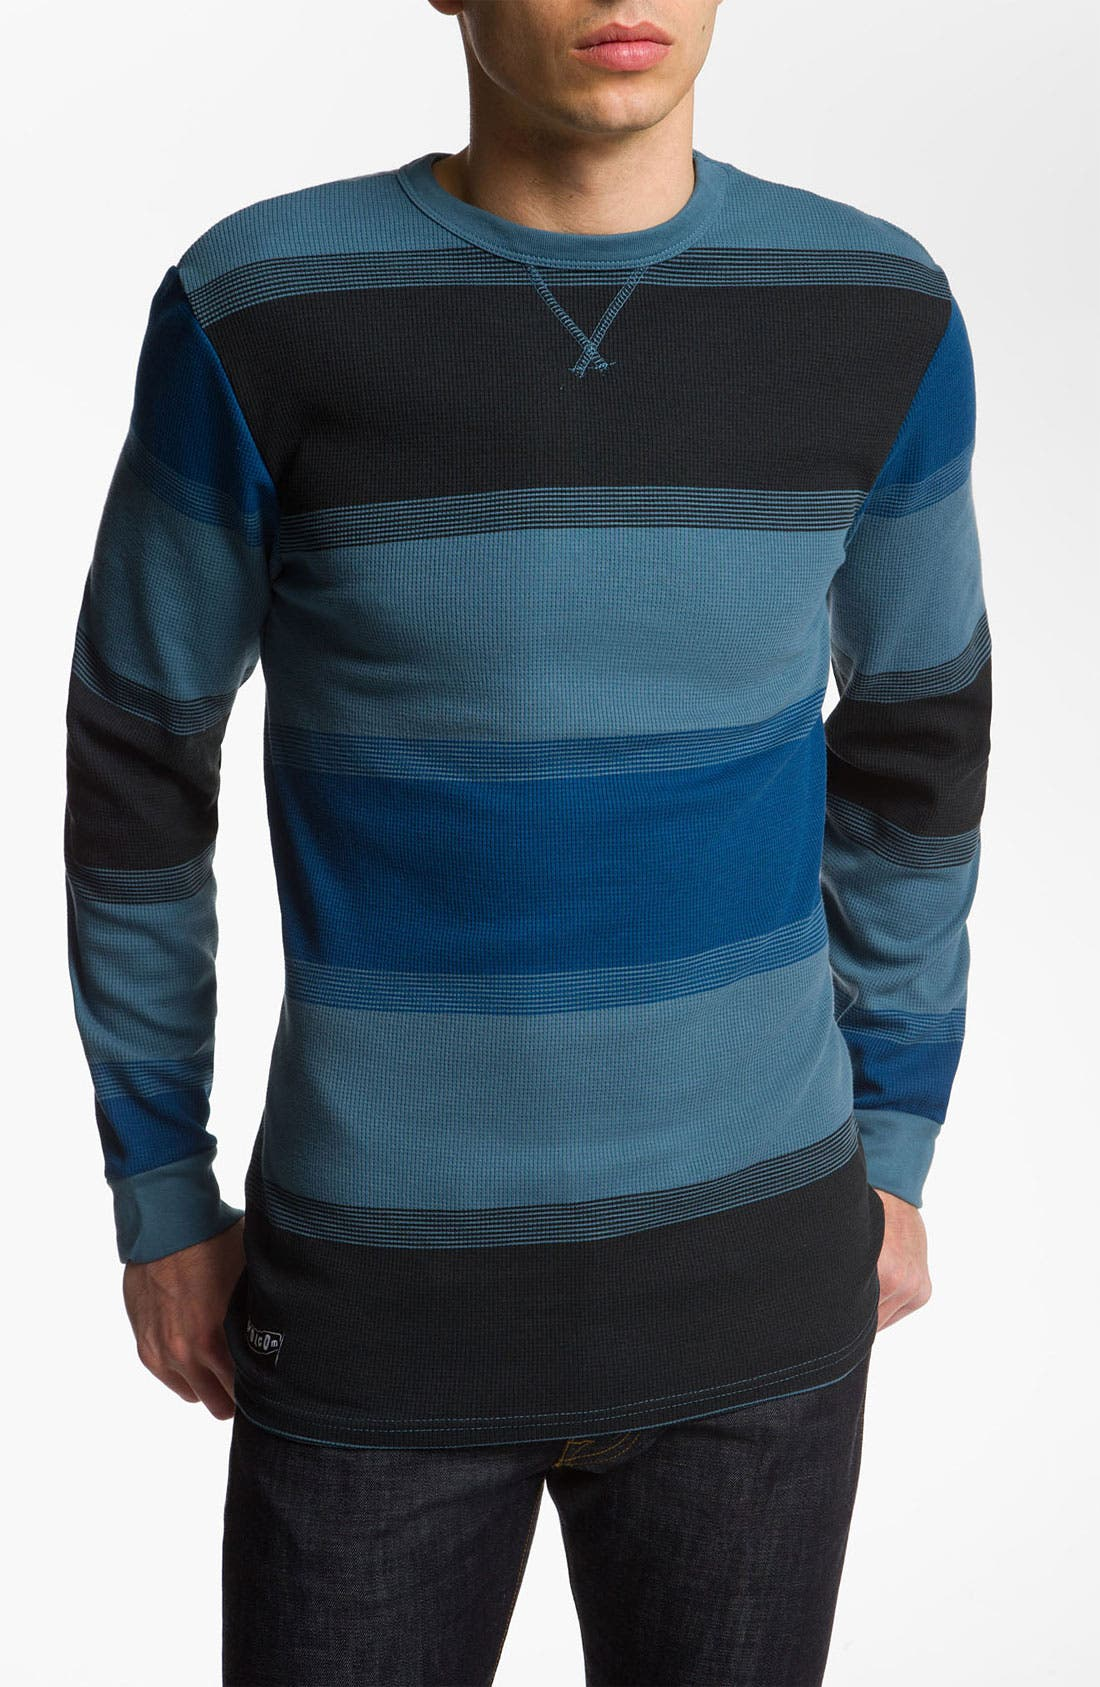 Main Image - Volcom 'Rail Way' Long Sleeve Thermal T-Shirt